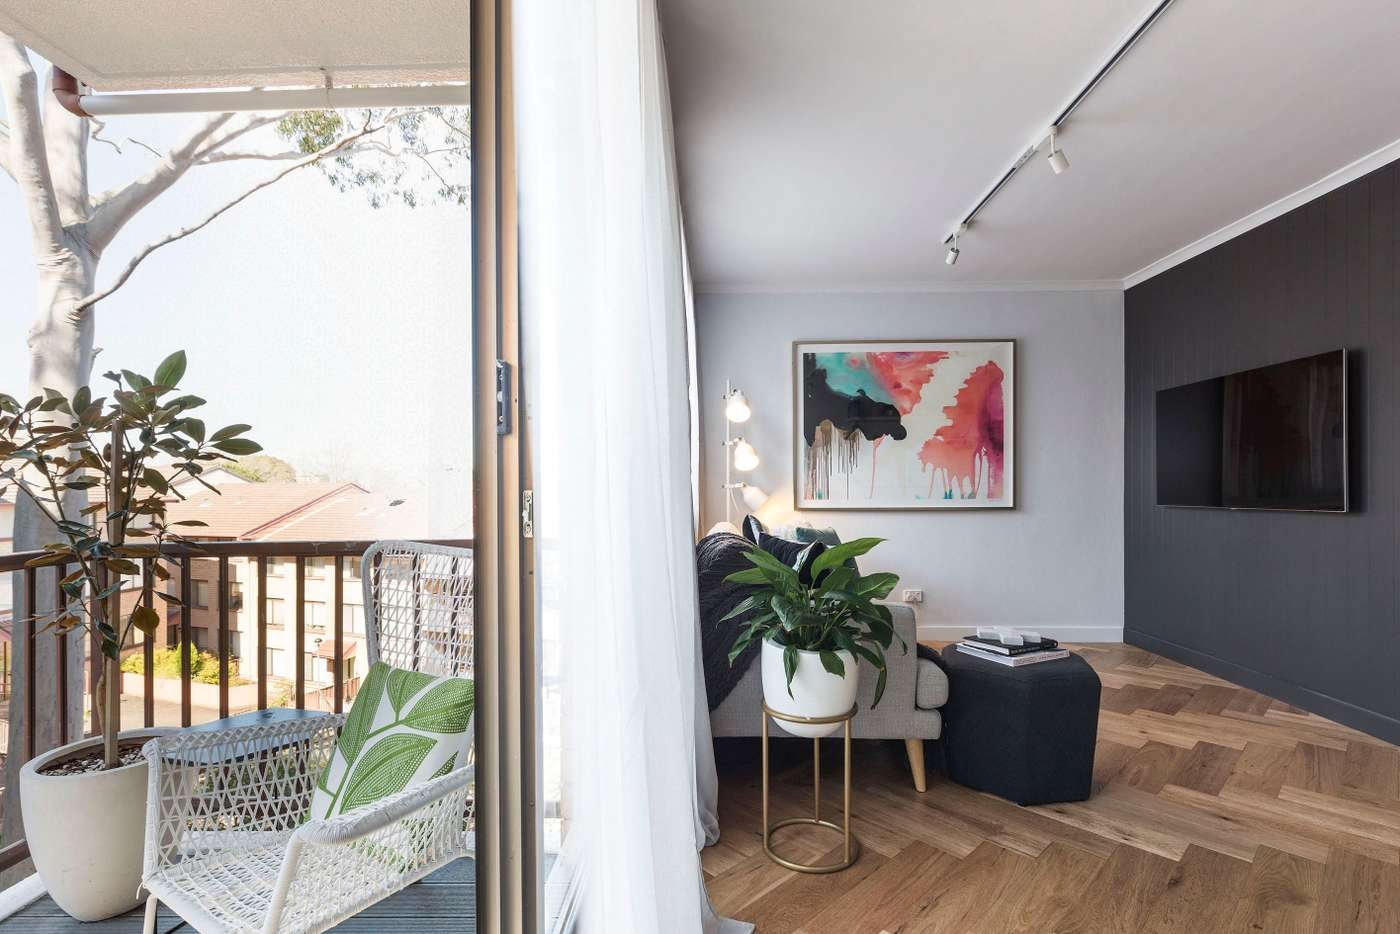 Main view of Homely apartment listing, 24/2 Goodlet Street, Surry Hills NSW 2010